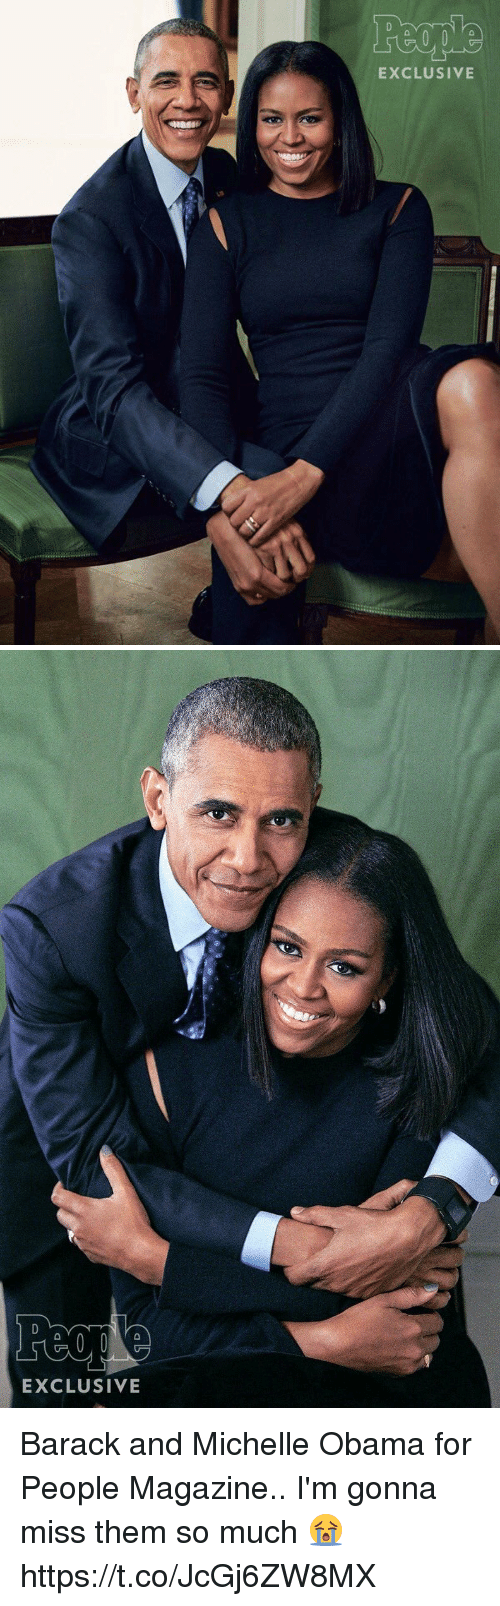 Michelle Obama, Obama, and People Magazine: EXCLUSIVE   EXCLUSIVE Barack and Michelle Obama for People Magazine.. I'm gonna miss them so much 😭 https://t.co/JcGj6ZW8MX